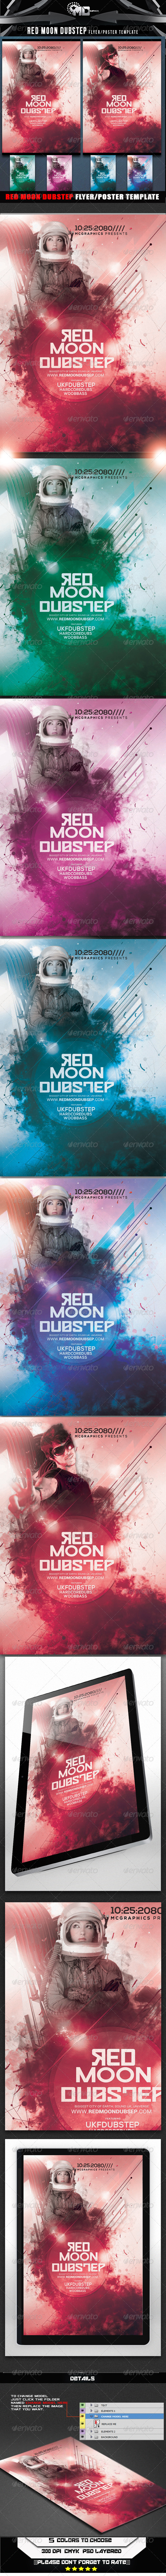 GraphicRiver Red Moon Dubstep Flyer Poster Template 8392389